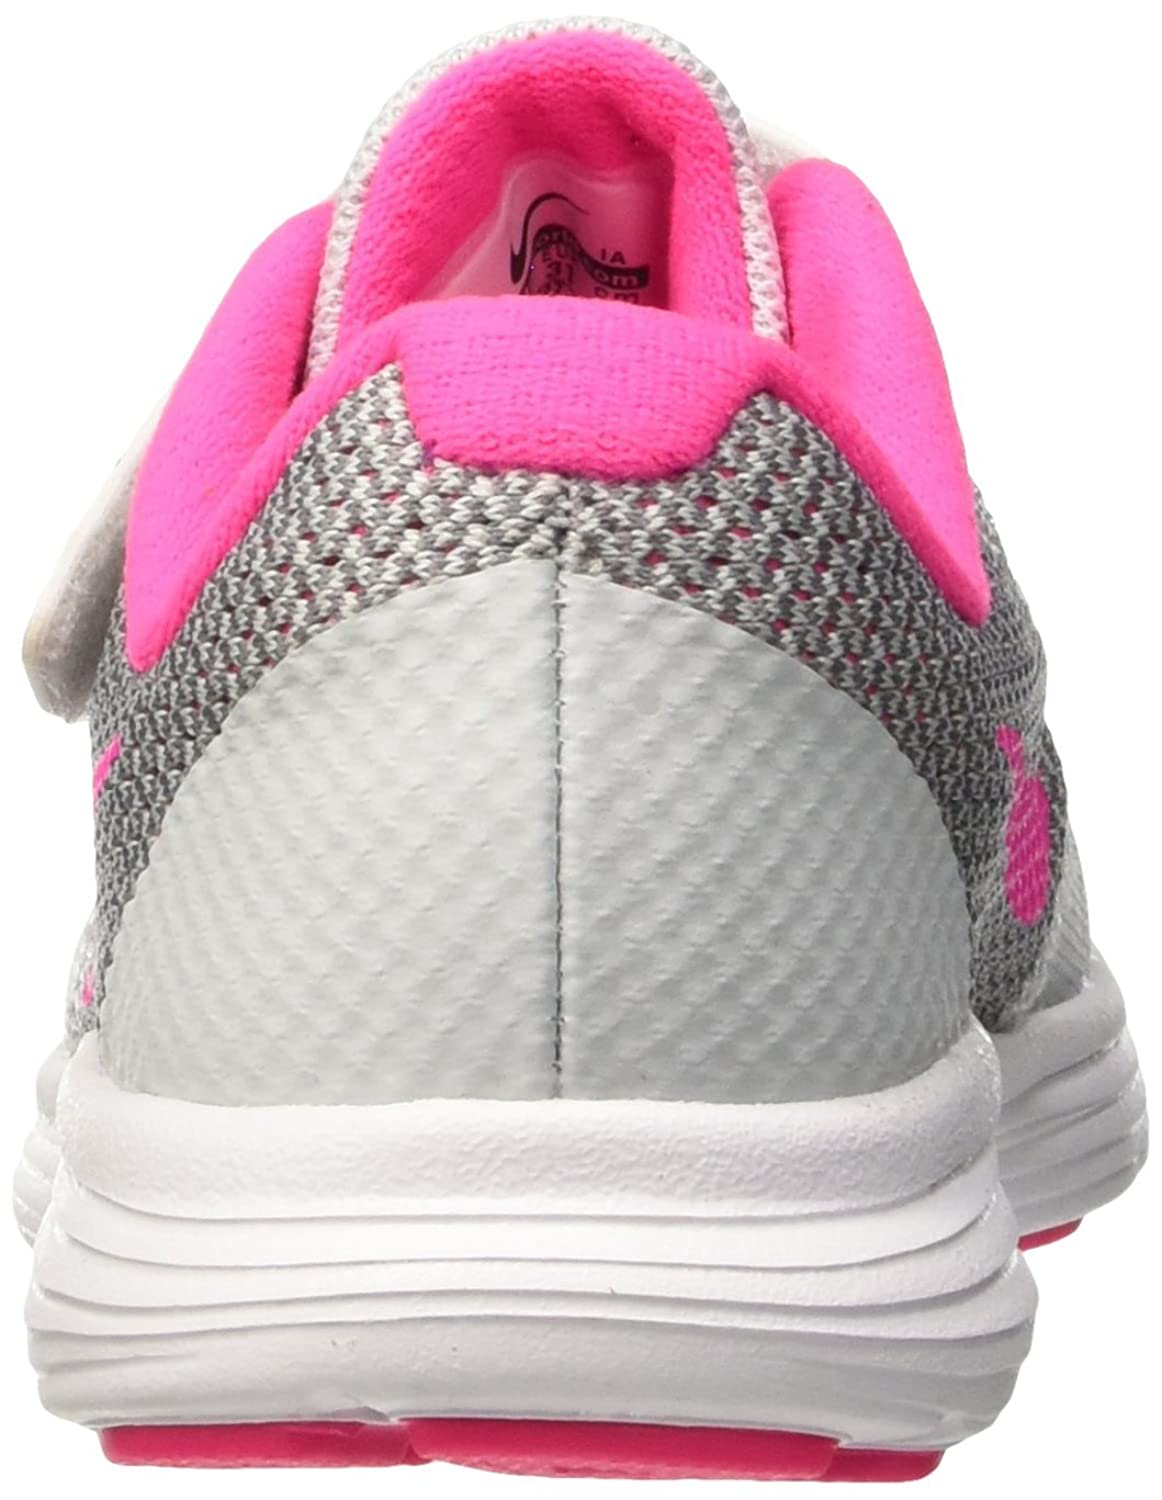 Nike Revolution 3 (PS) Pre-School Girls' Shoe #819417-007 (12.5C):  Amazon.ca: Shoes & Handbags